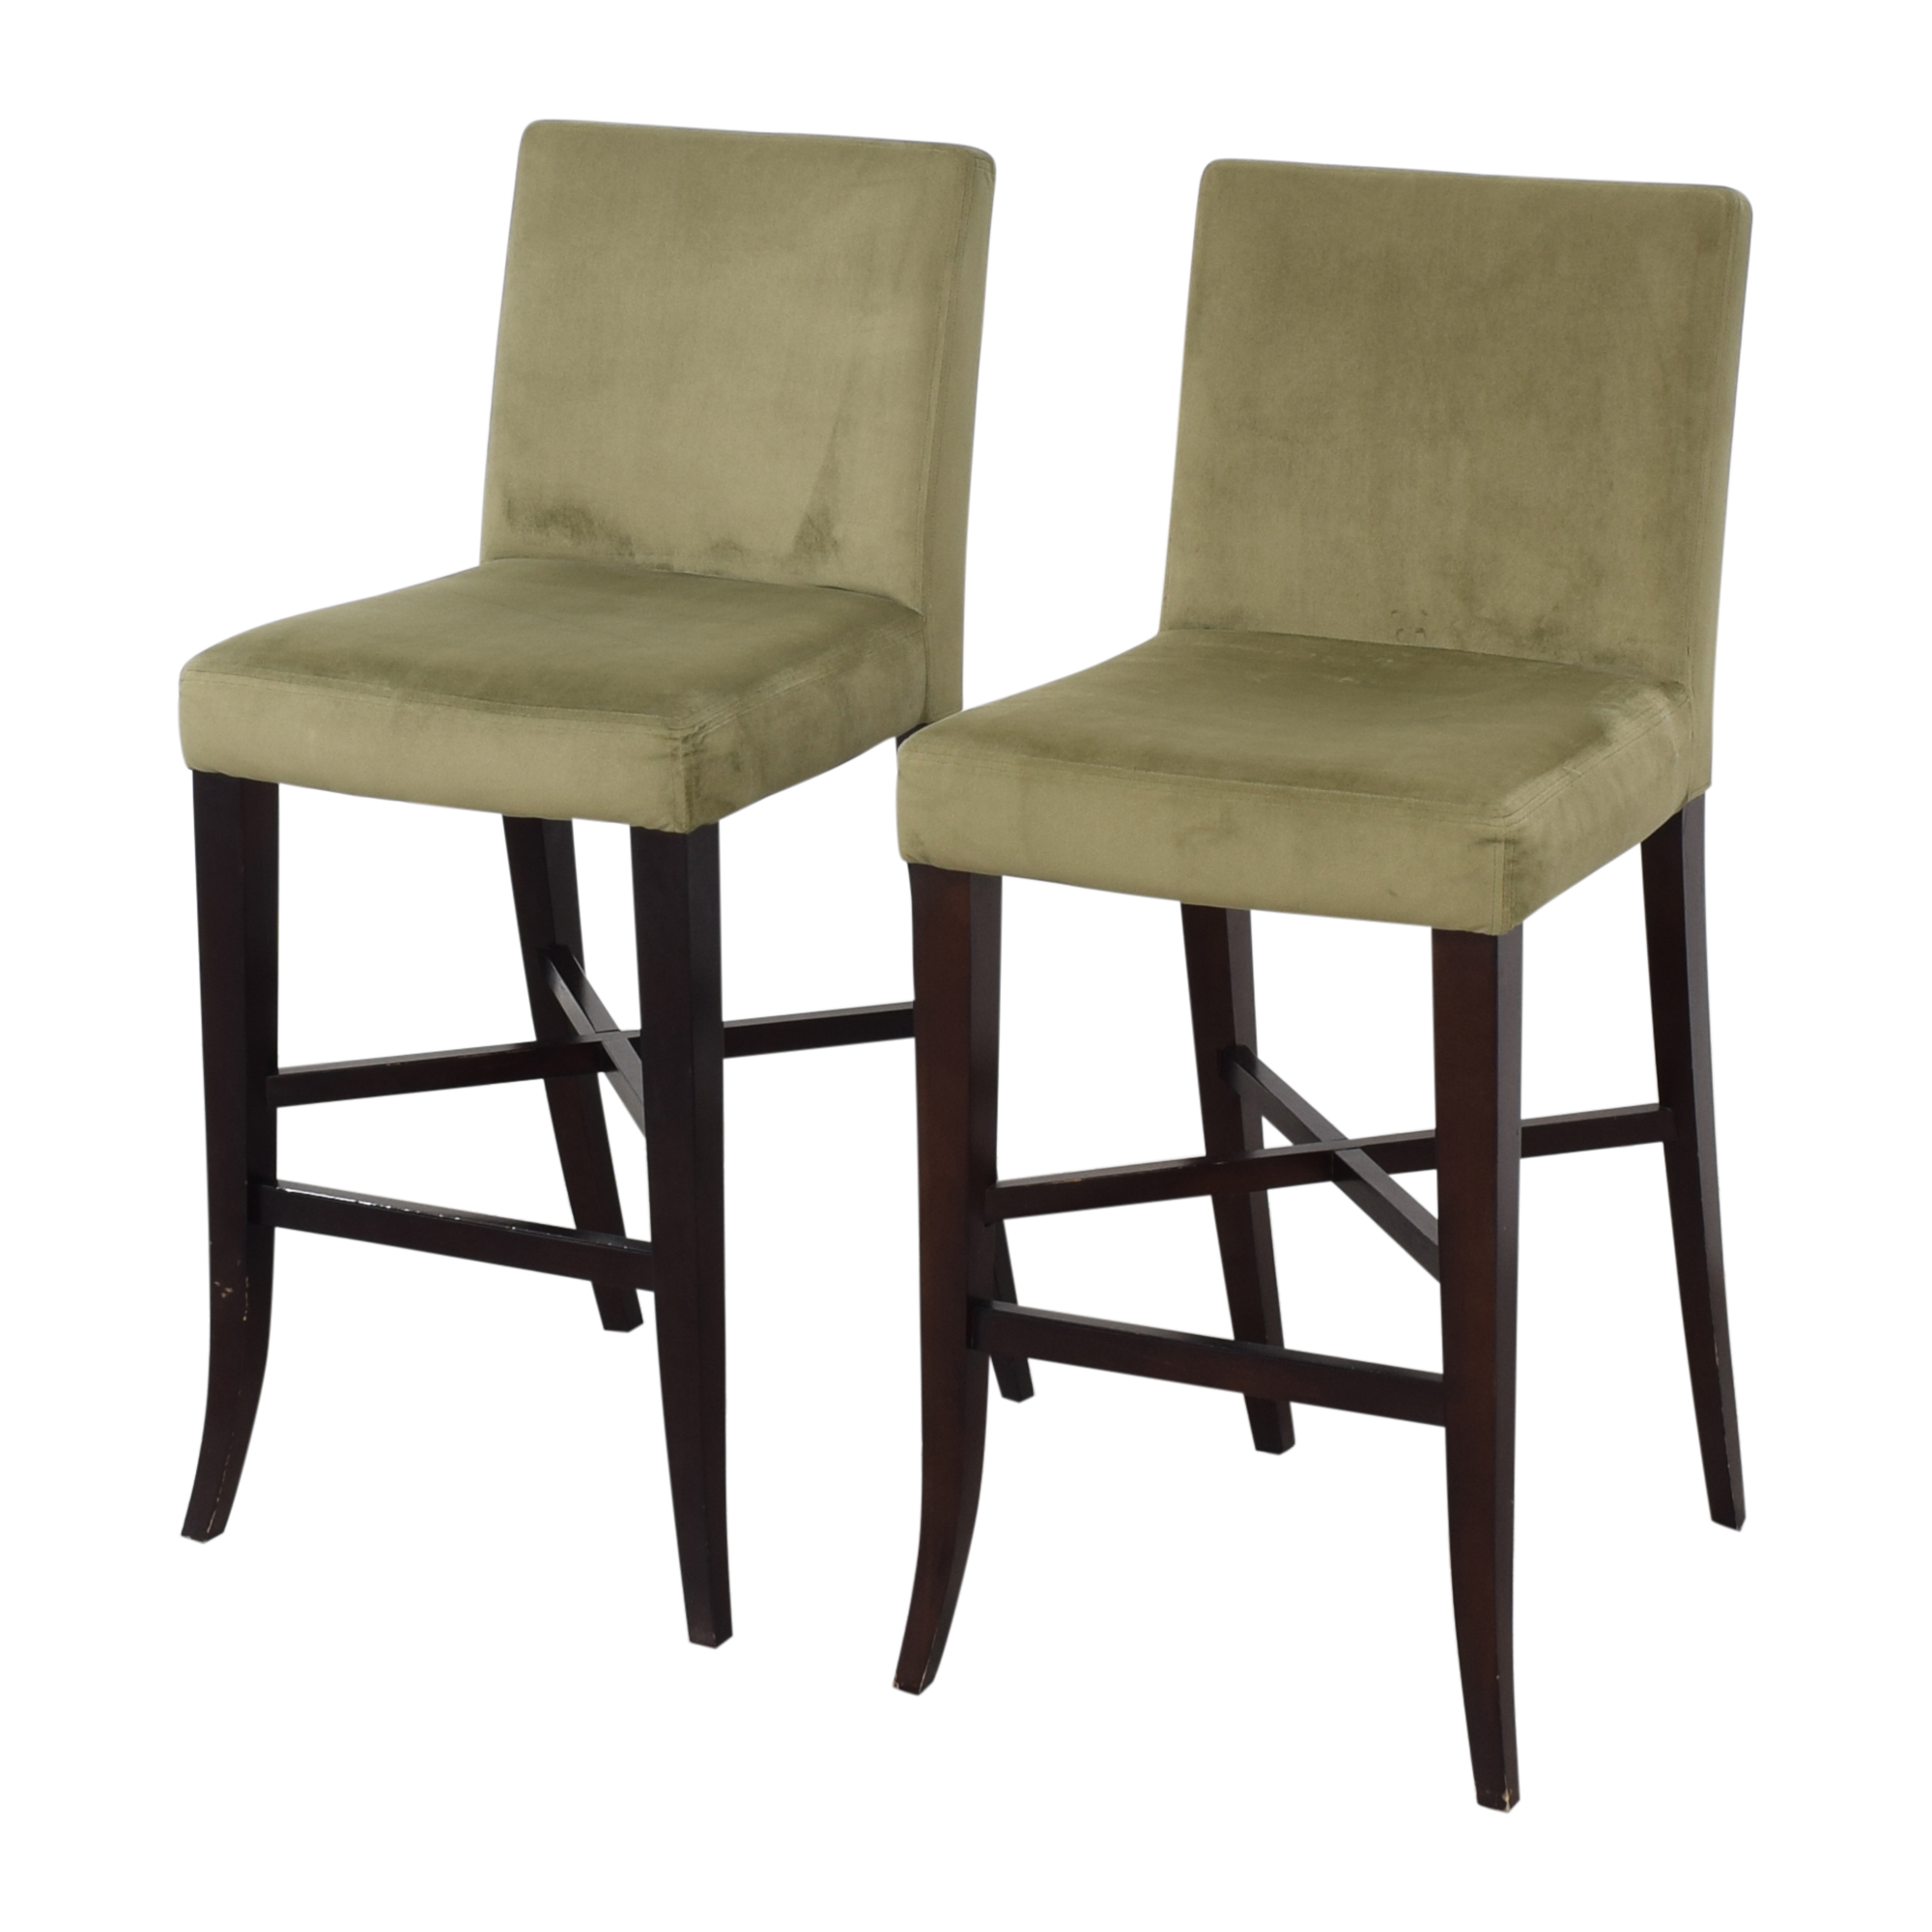 Crate & Barrel Upholstered Bar Stools Crate & Barrel